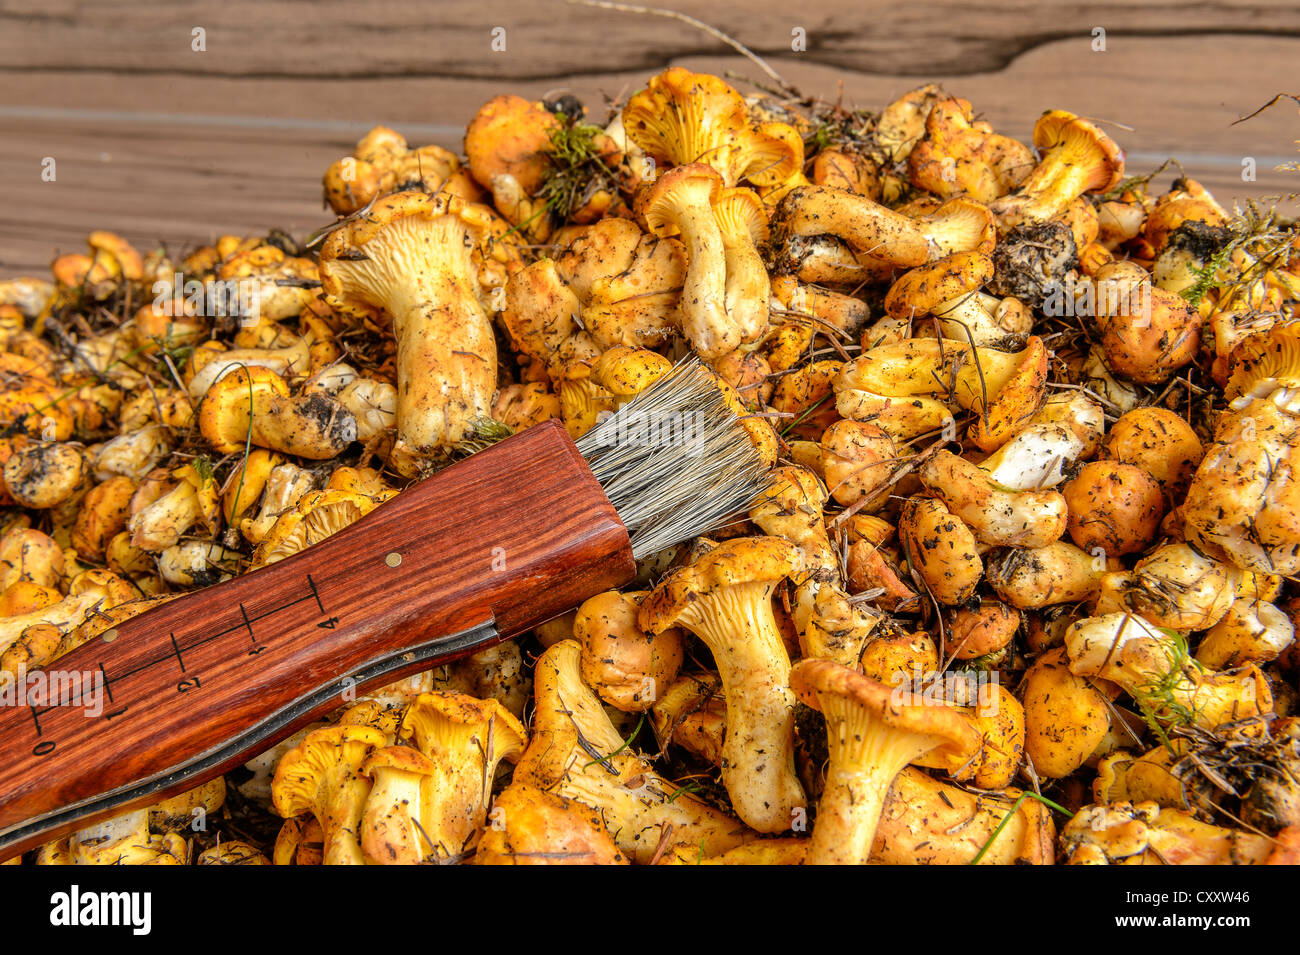 Fresh chanterelles or golden chanterelles (Cantharellus cibarius), uncleaned, with a mushroom brush - Stock Image